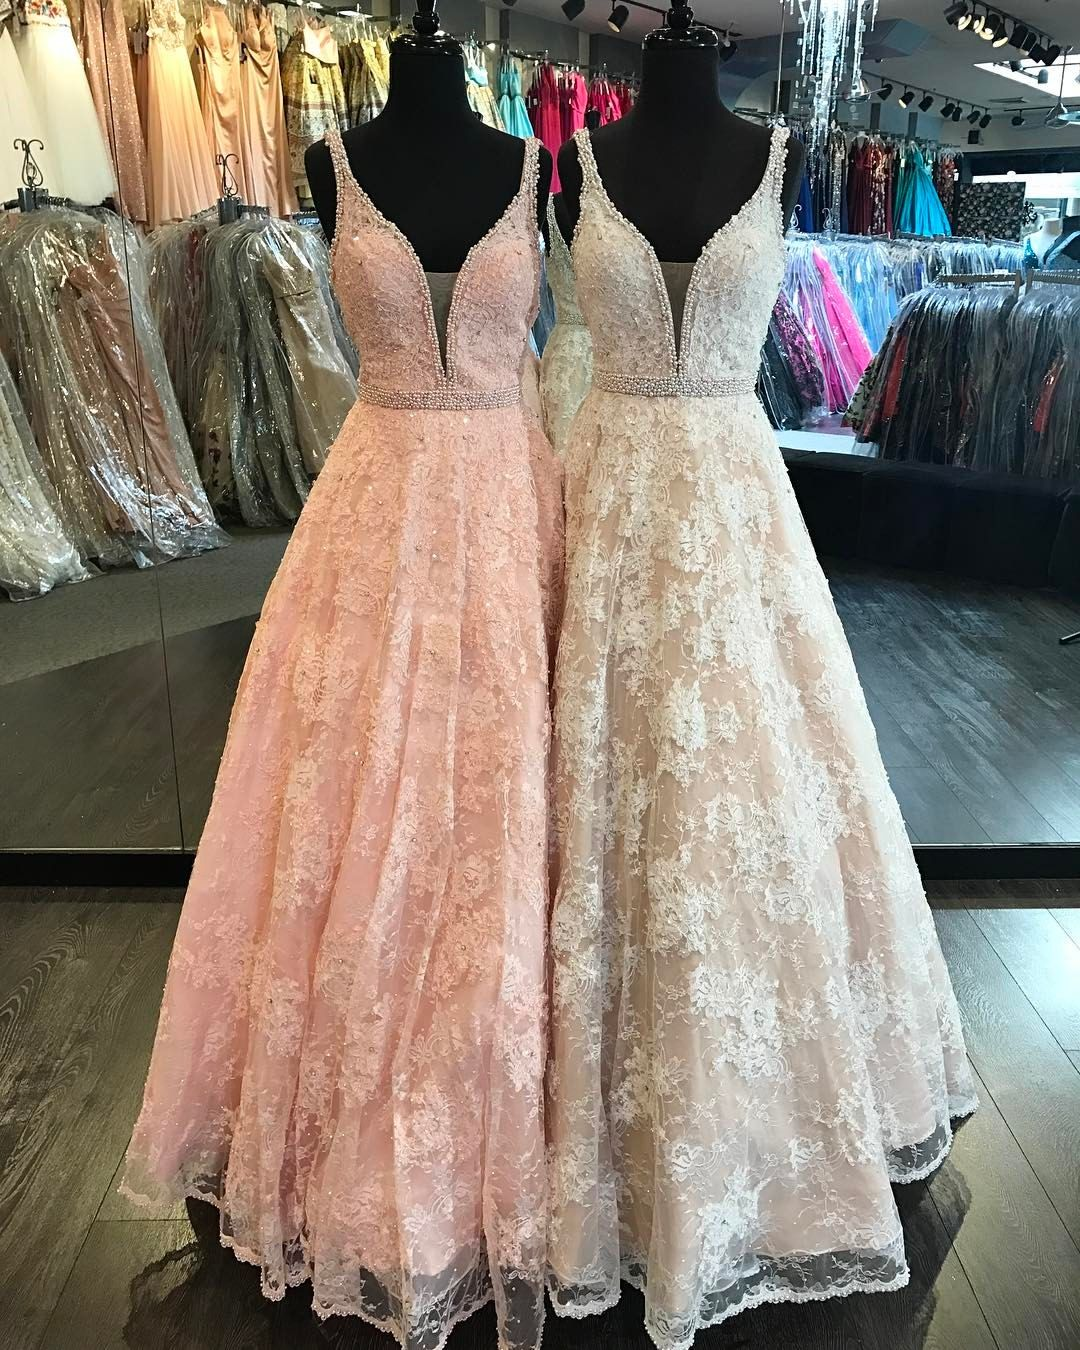 Pin by Alyvia Coney on Dresses | Pinterest | Pageants, Formal and Prom